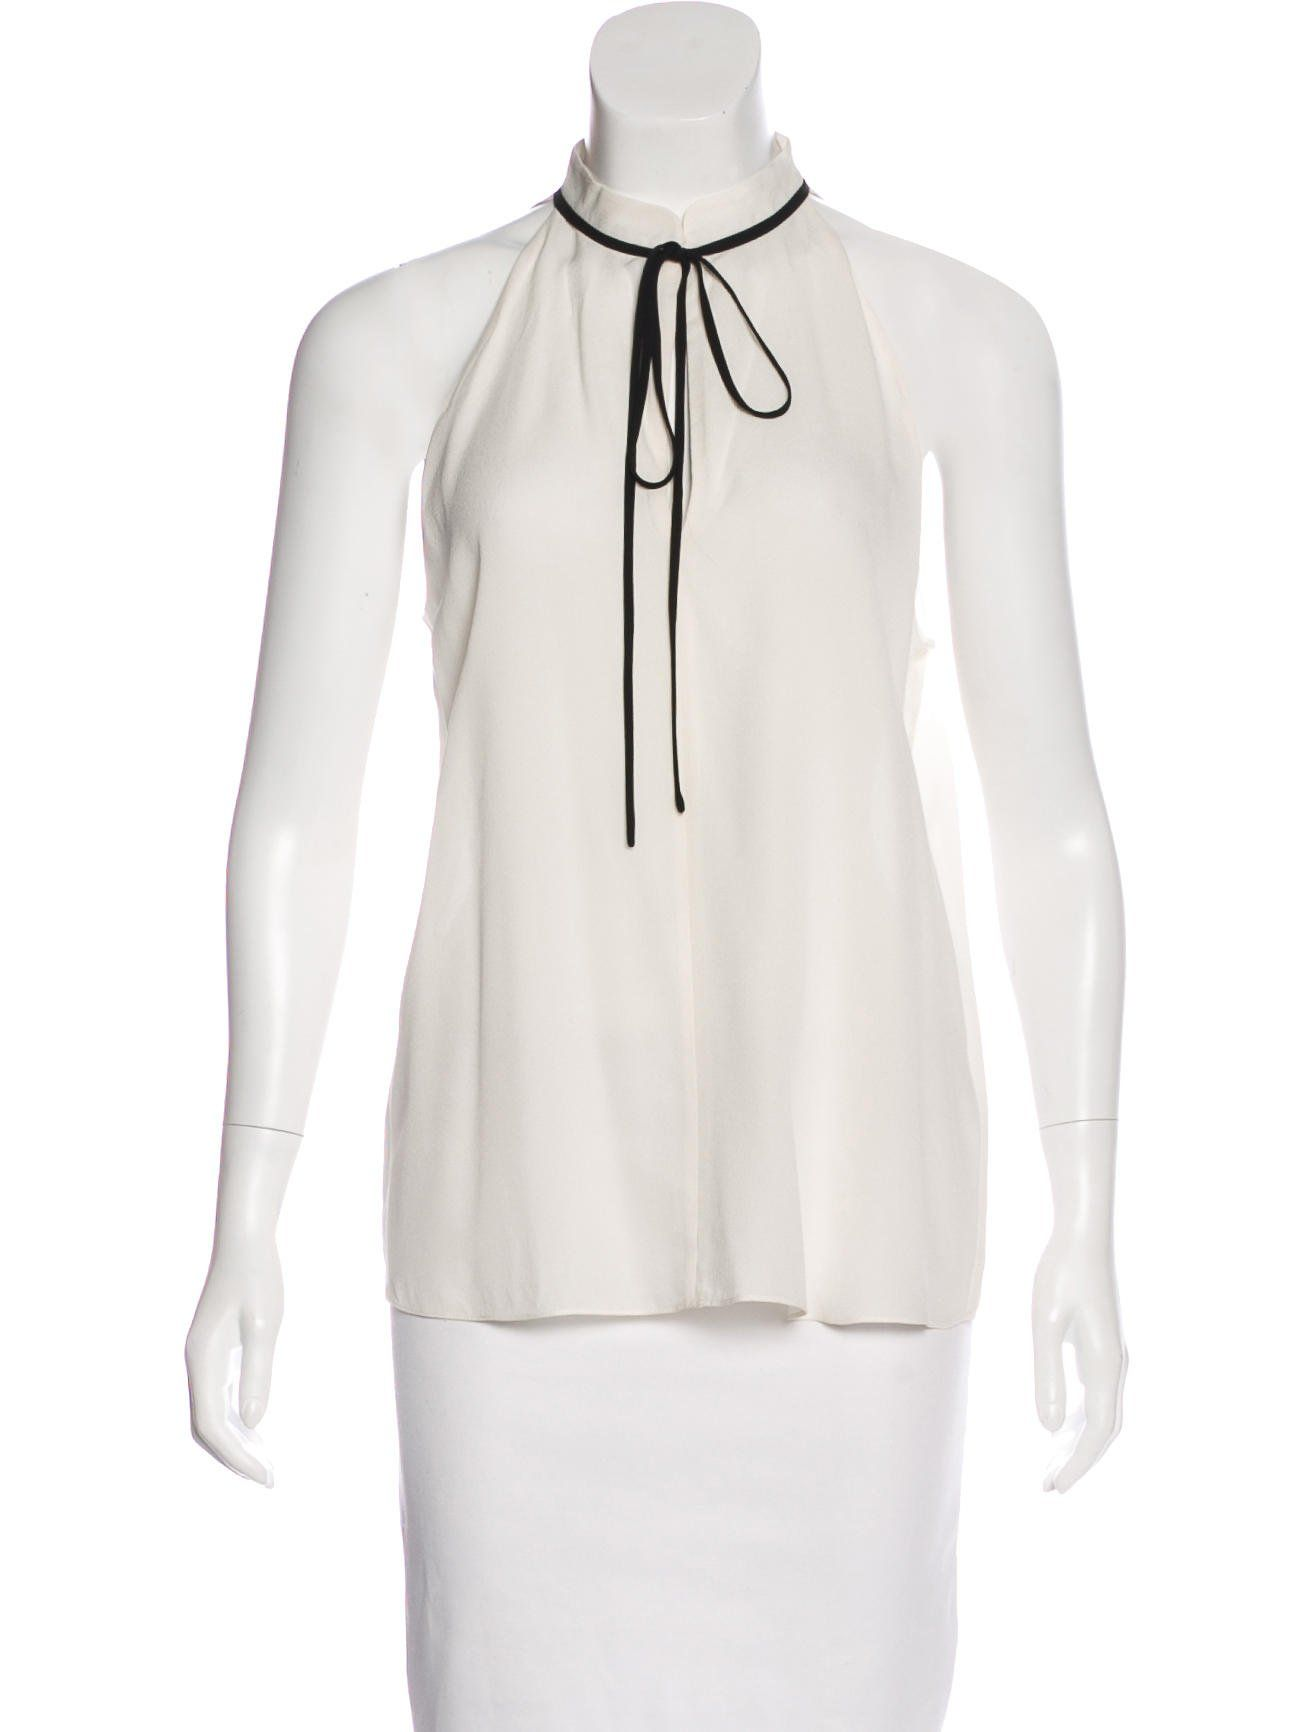 00ebd7172 Ivory and black A.L.C. silk sleeveless blouse with V-neck, sash tie at bust  and tonal stitching throughout.